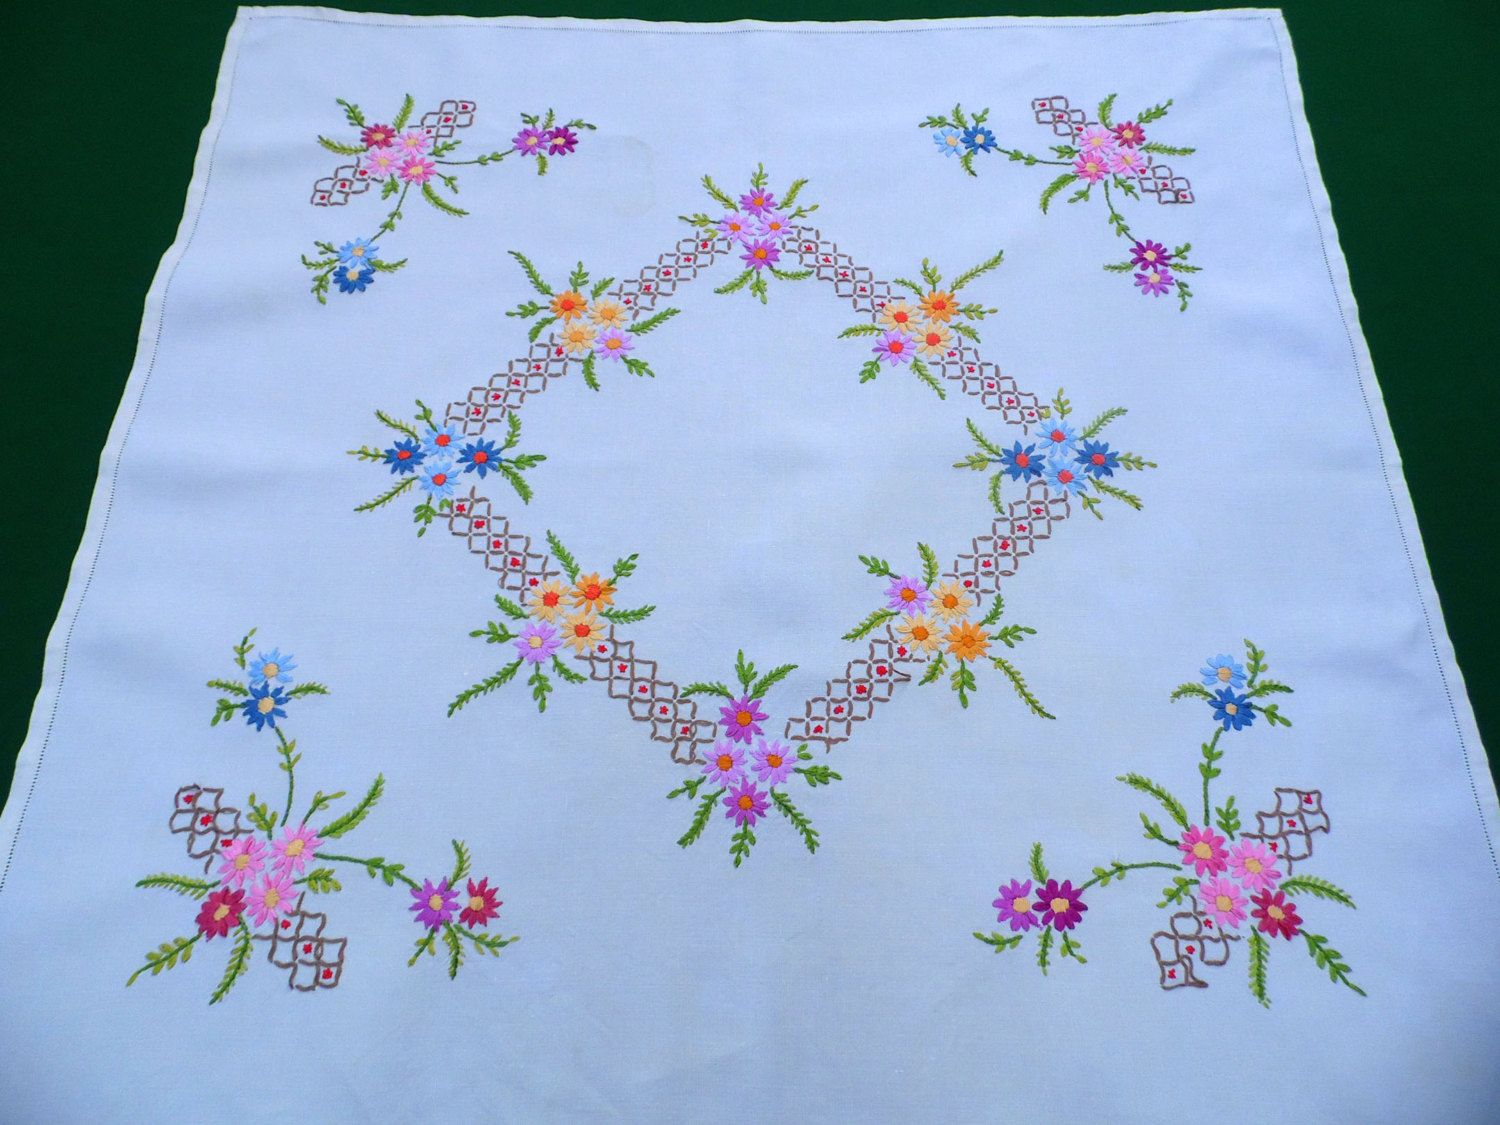 Outline embroidery designs for tablecloth - Vintage Square Ecru Linen Tablecloth With Flowers Embroidery Hand Embroidered Floral Table Cloth Tray Cloth Purple Colors